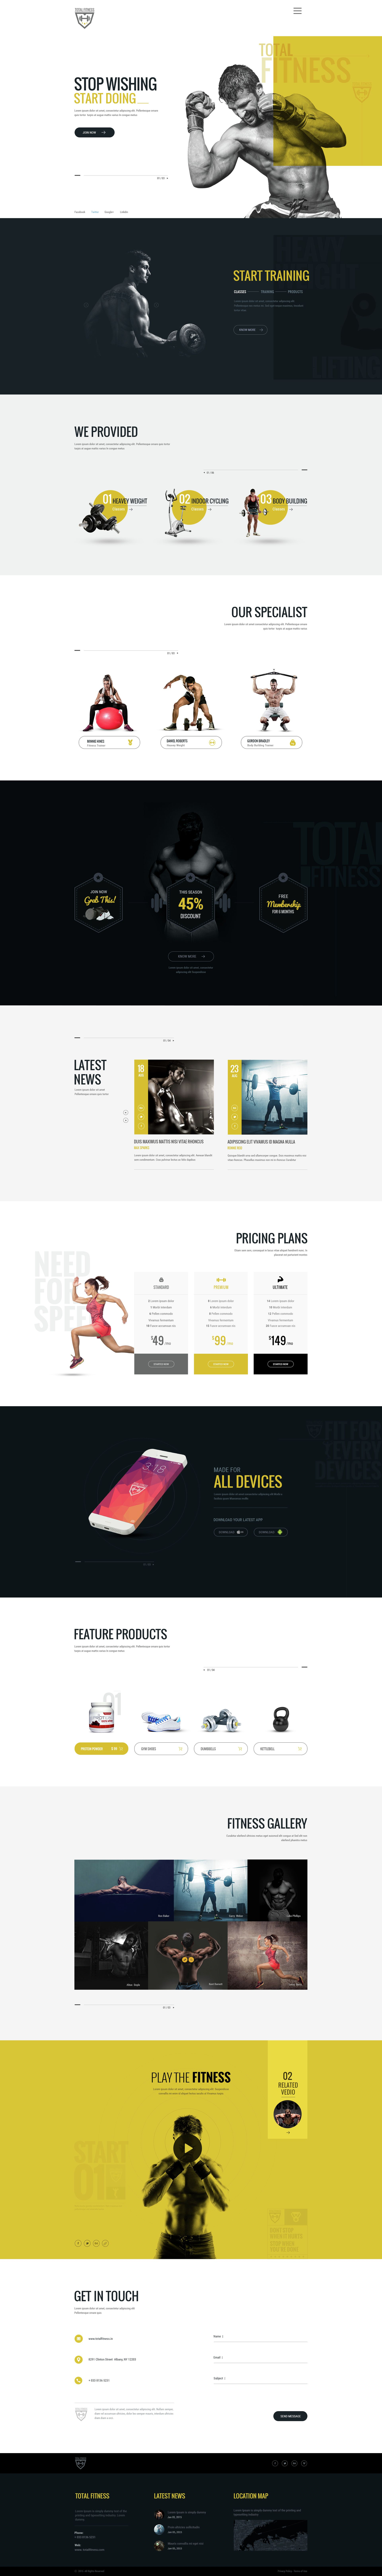 Total Fitness | All in One Fitness PSD Template | Diseño web ...